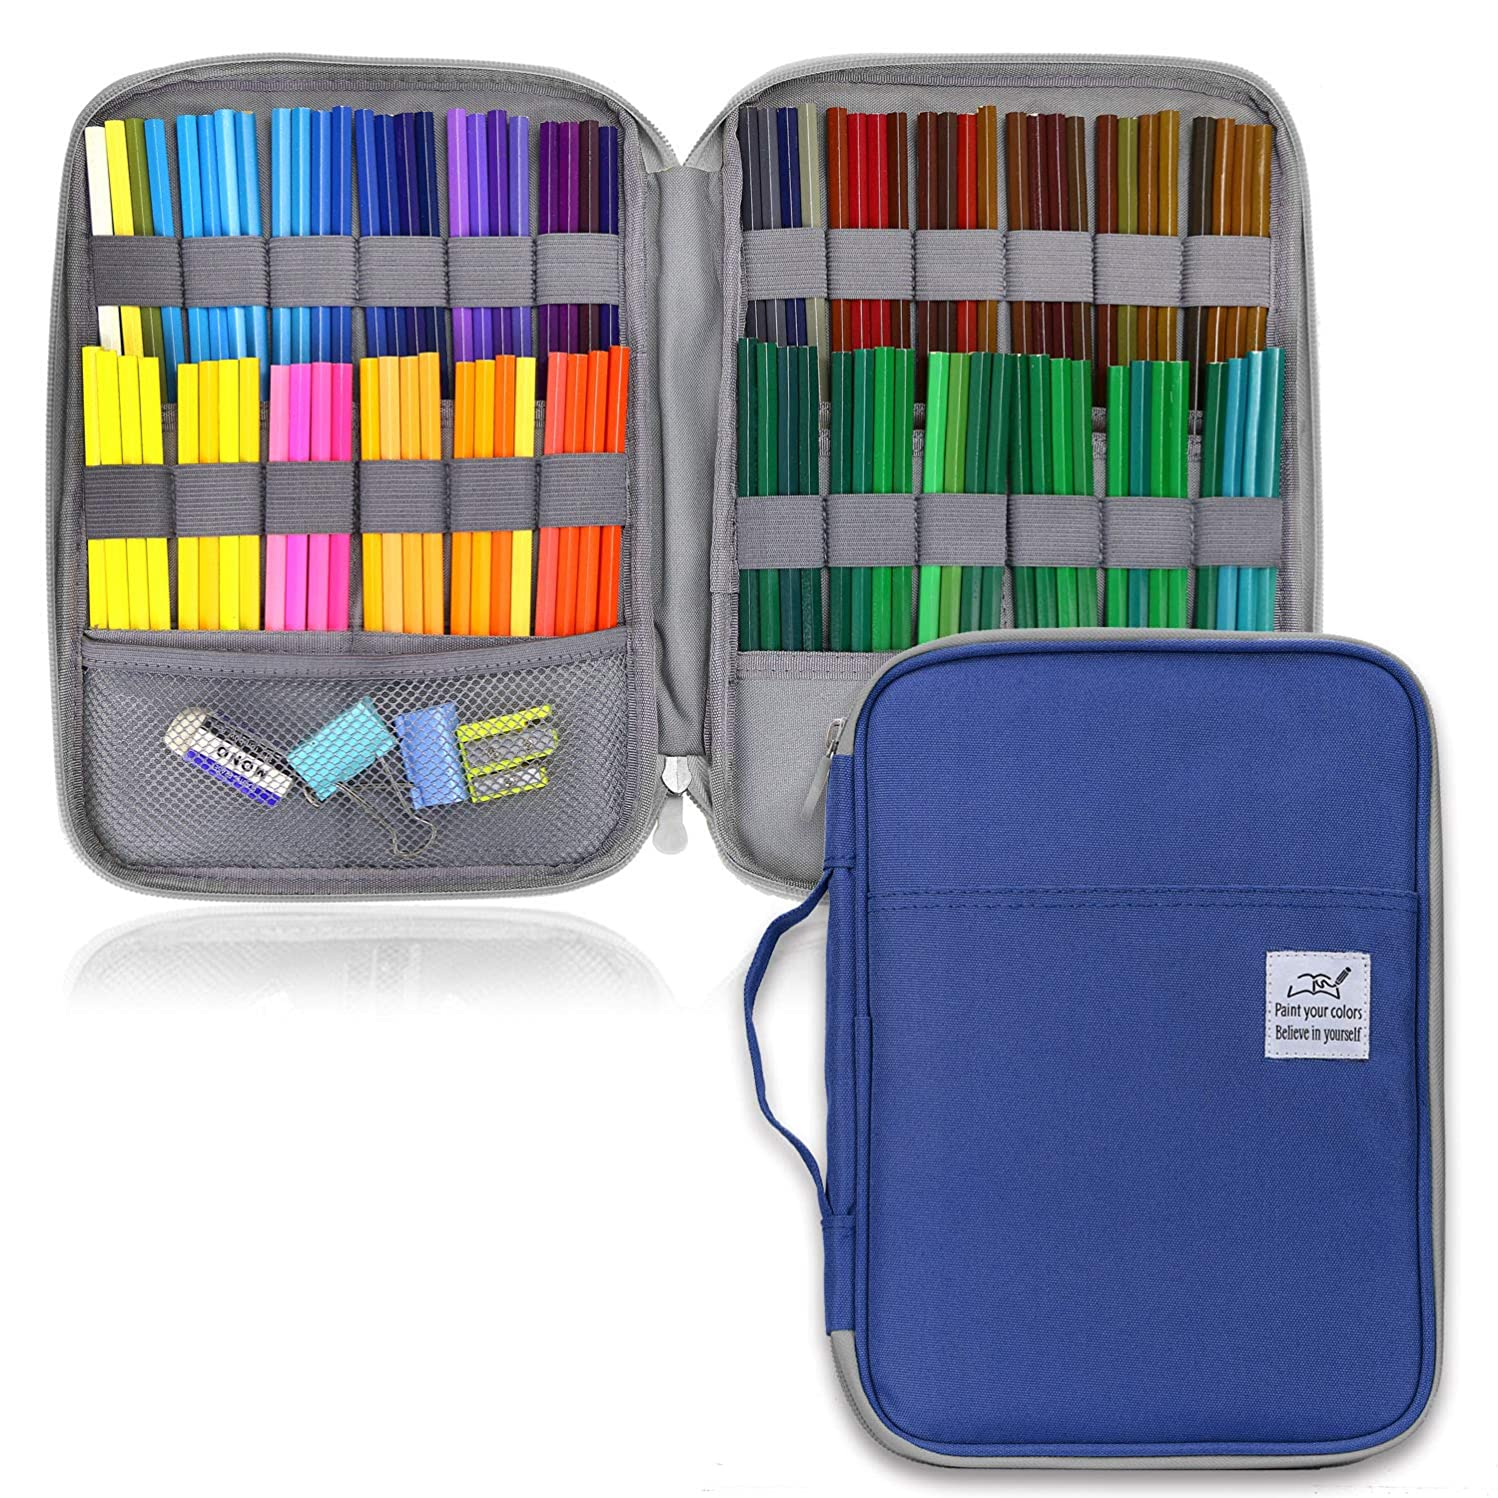 YOUSHARES 96 Slots Colored Pencil Case, Large Capacity Pencil Holder Pen Organizer Bag with Zipper for Prismacolor Watercolor Coloring Pencils, Gel Pens & Markers for Student & Artist (Blue)